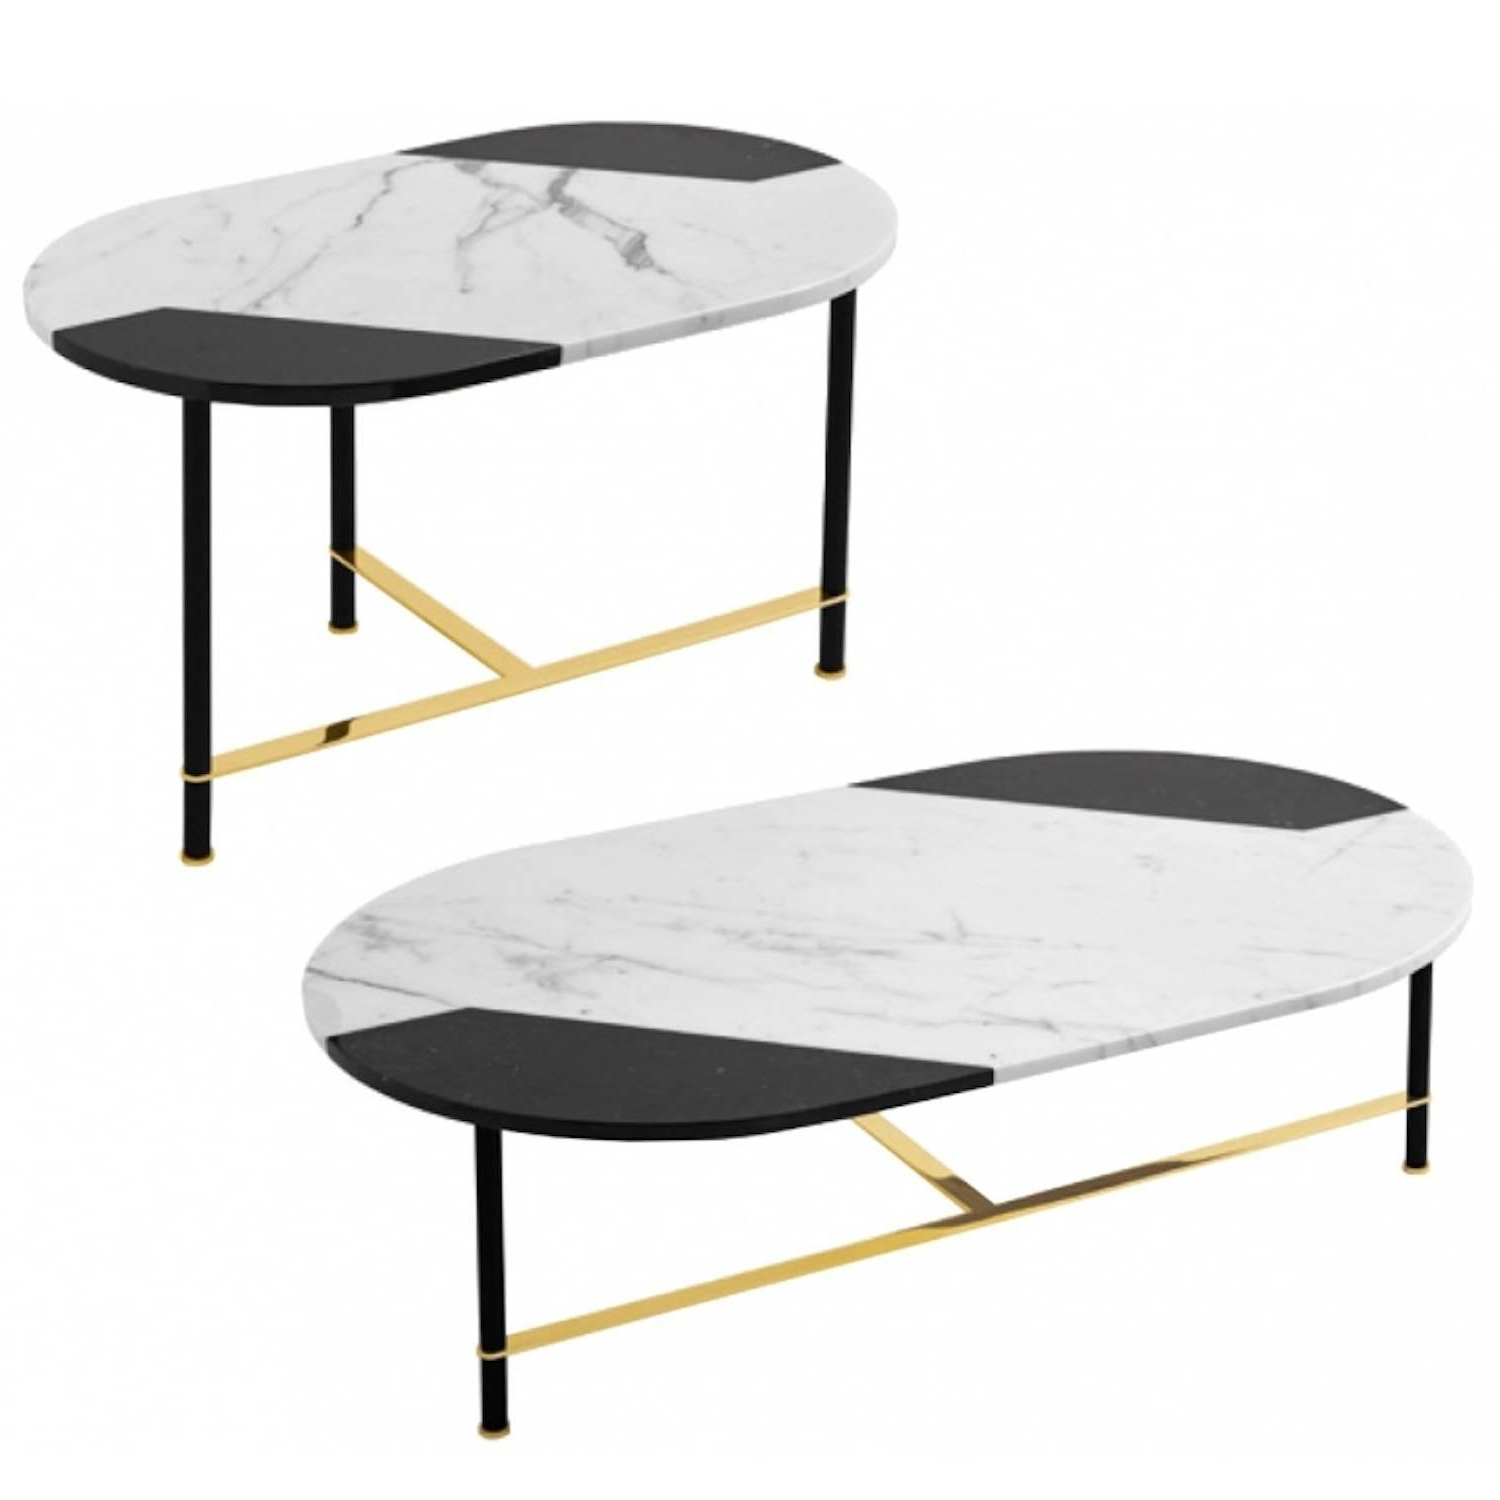 Smart Large Round Marble Top Coffee Tables For Most Up To Date Coffee Table Or Side Table In Black And White Inlaid Marble Top With (View 15 of 20)